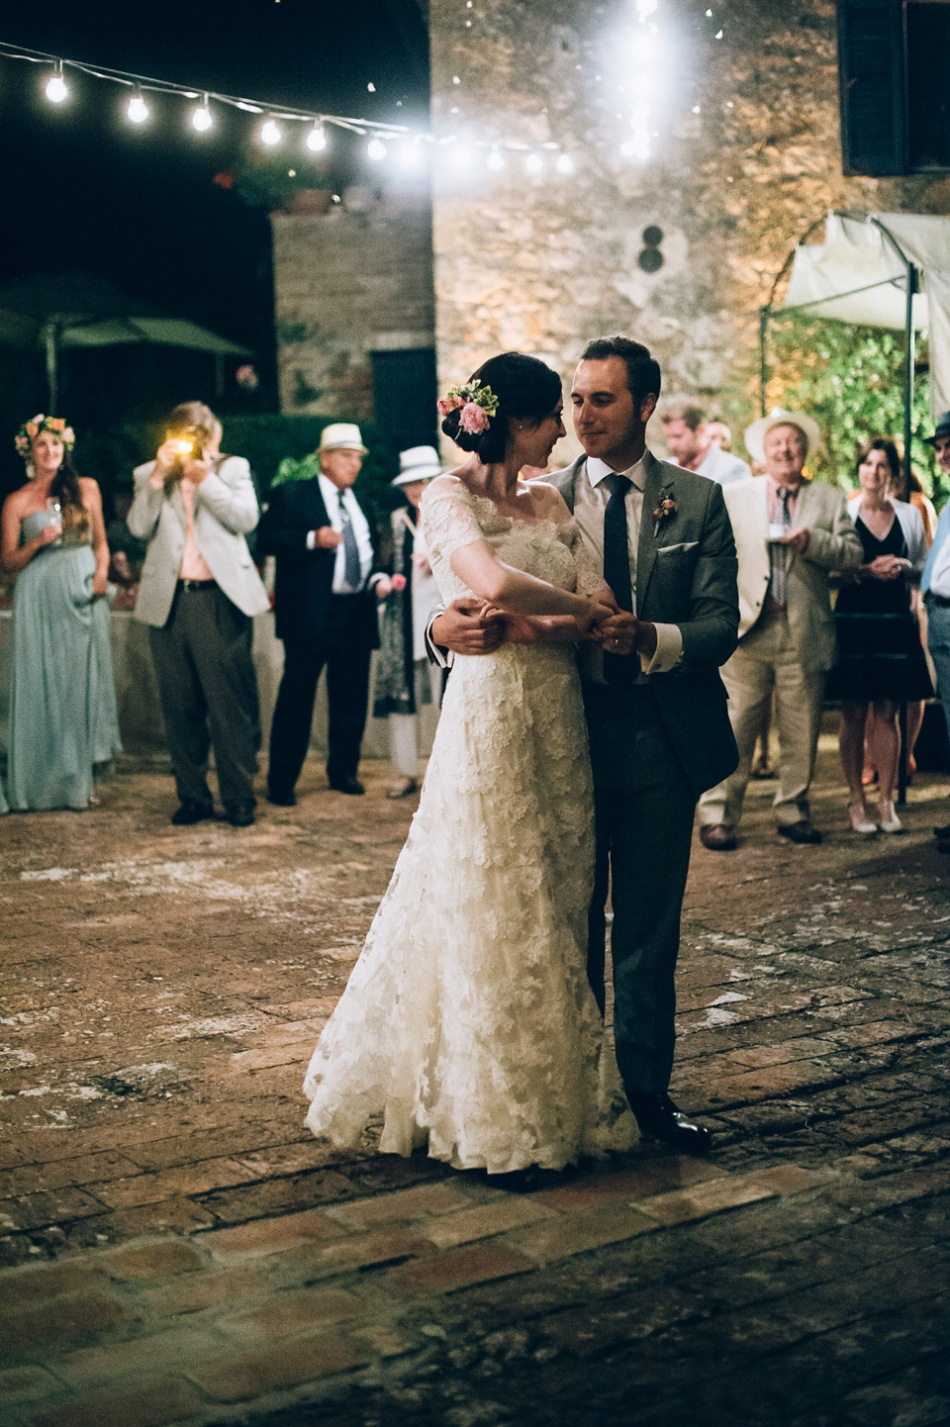 Katie and Andrew on their wedding day at Borgo Stomannano, Italy